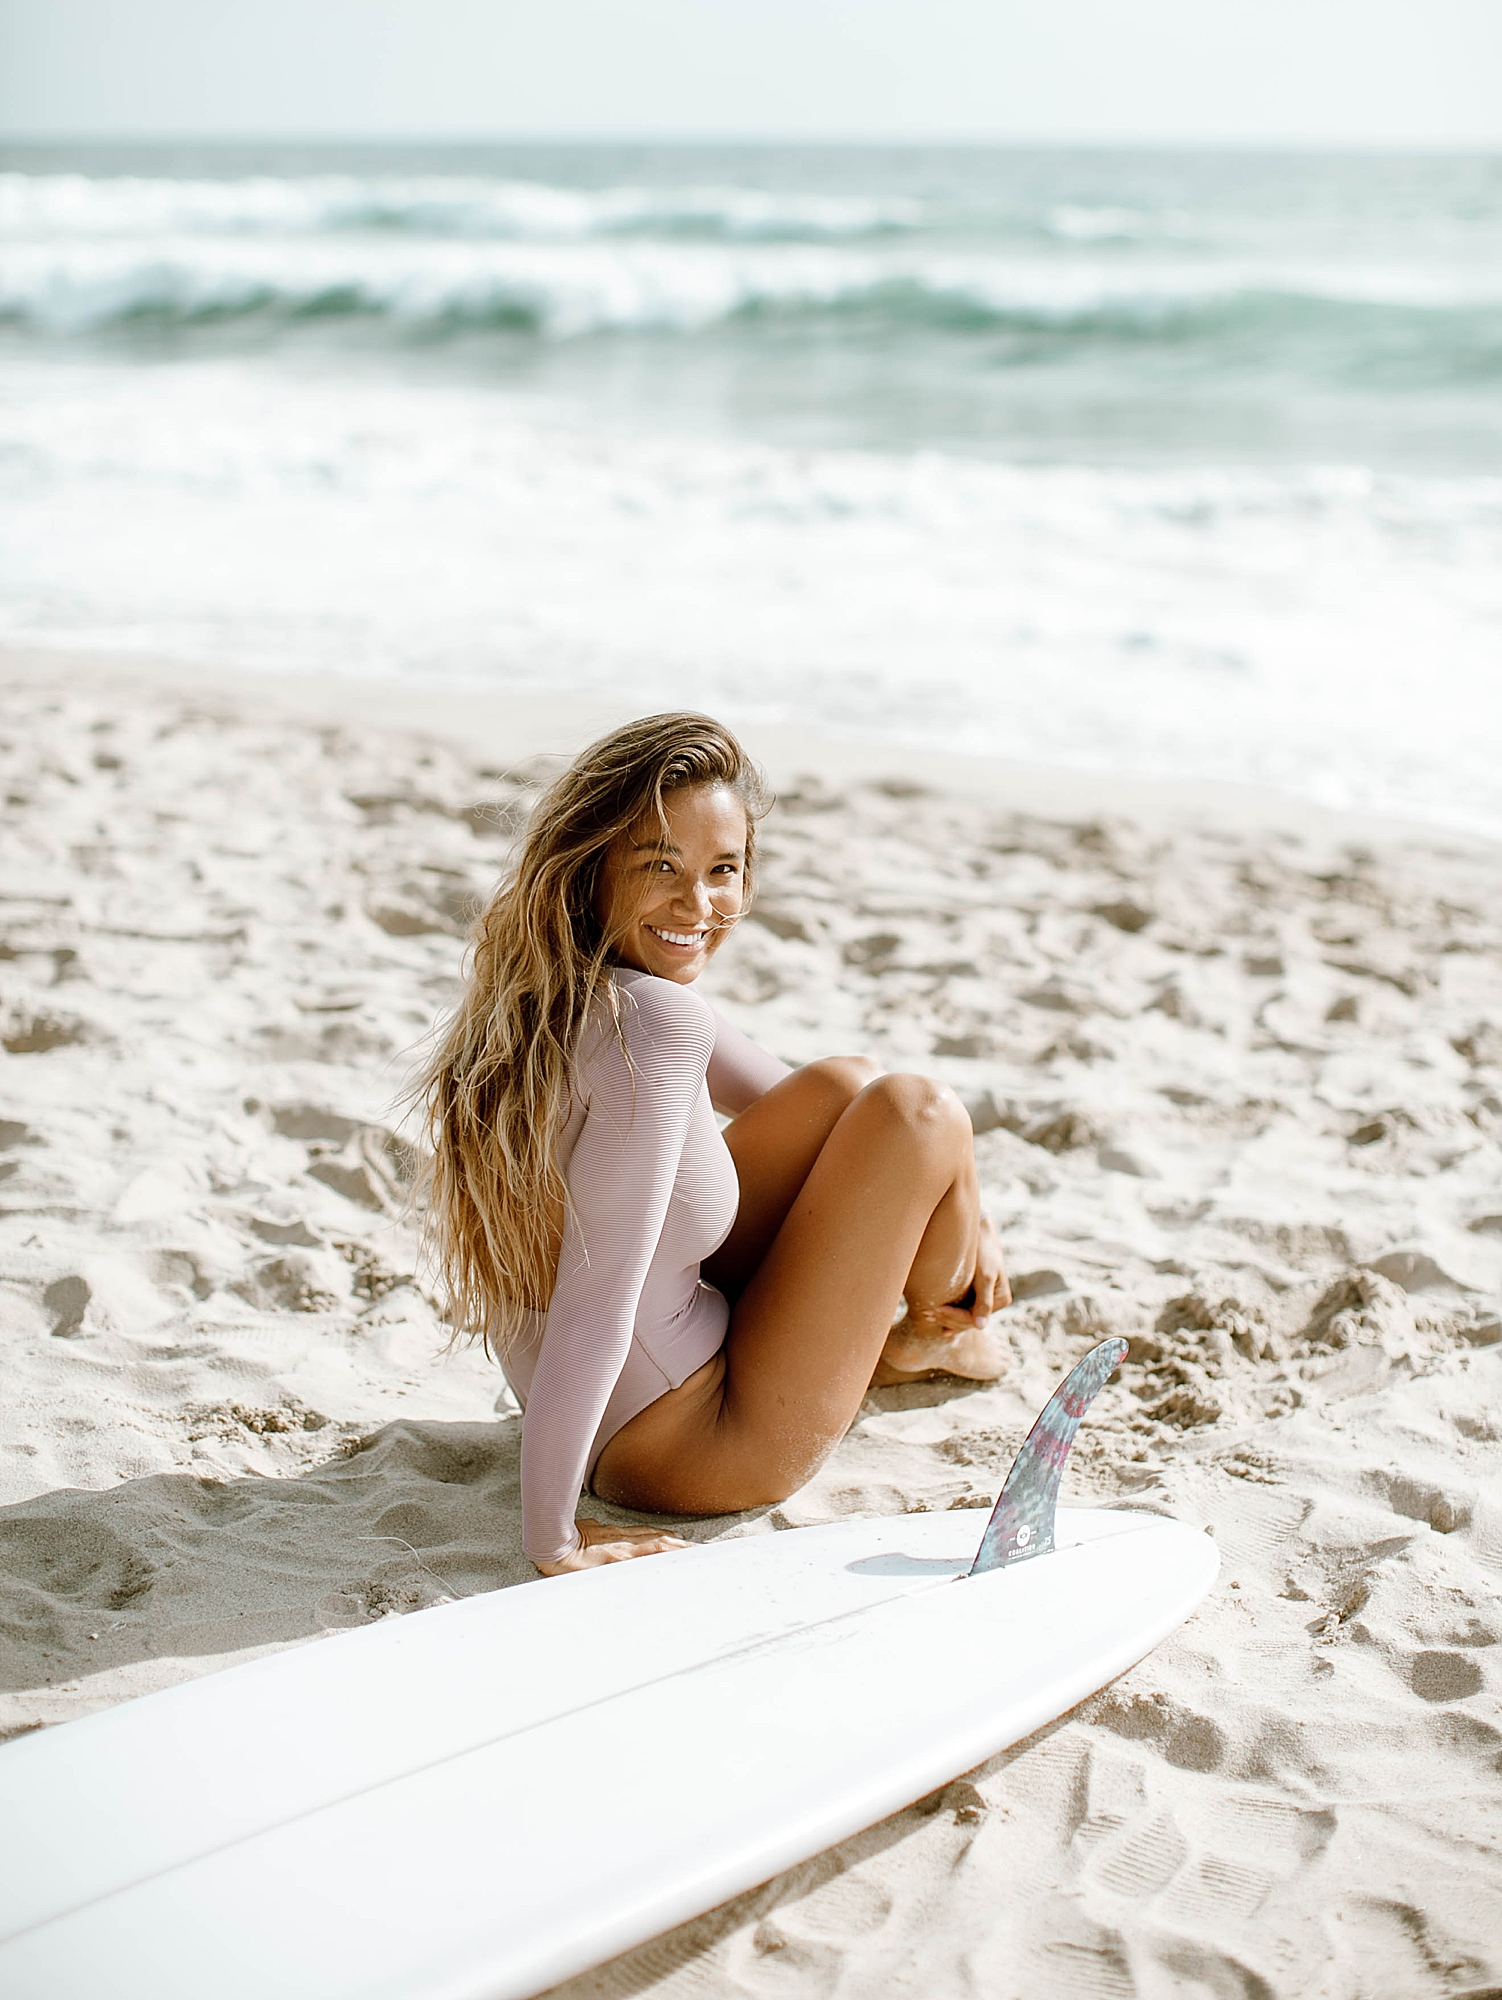 Southern California Surf and Lifestyle Fashion Photographer Kelee Bovelle @keleeb X Eryn Krouse @erynkrouse_0023.jpg